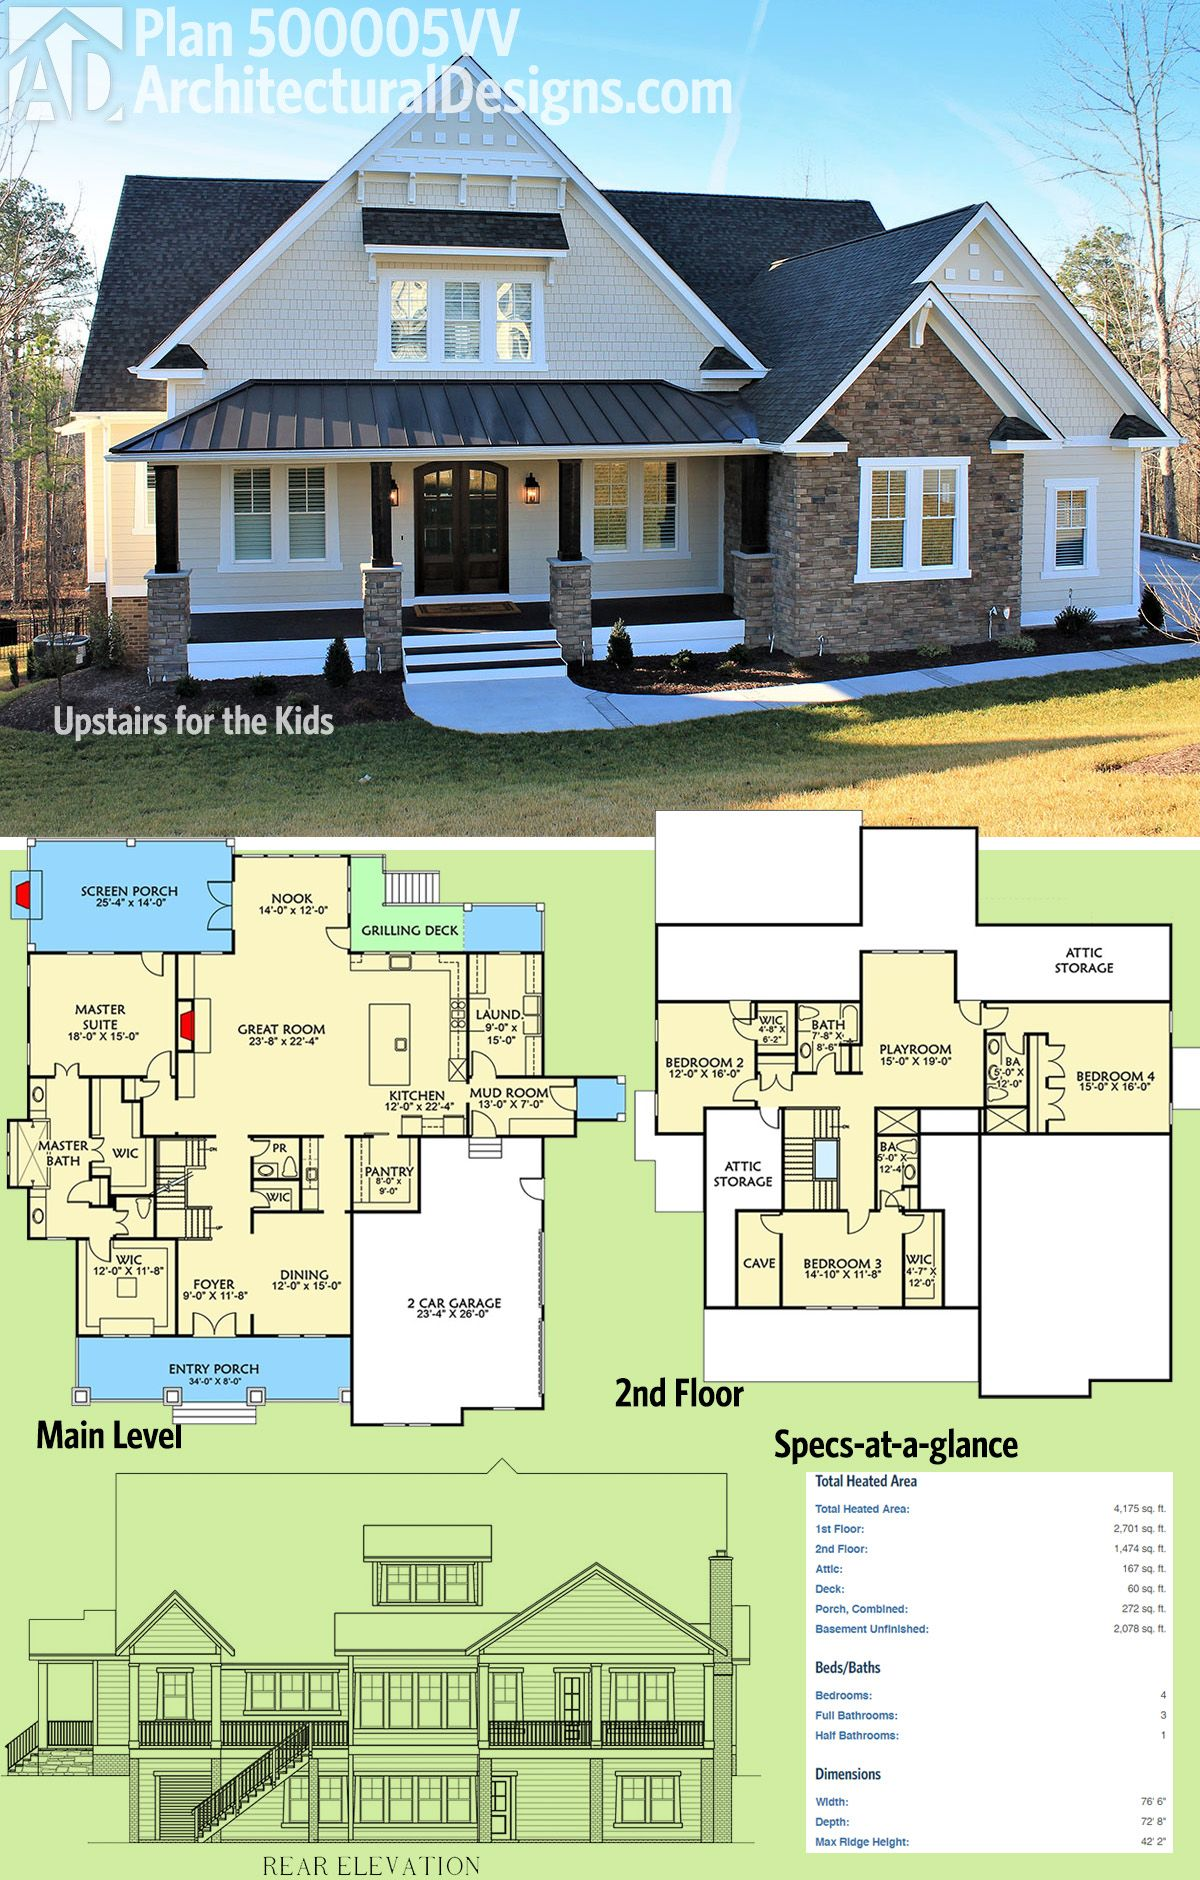 Modern Farmhouse Plans plan 51762hz: budget friendly modern farmhouse plan with bonus